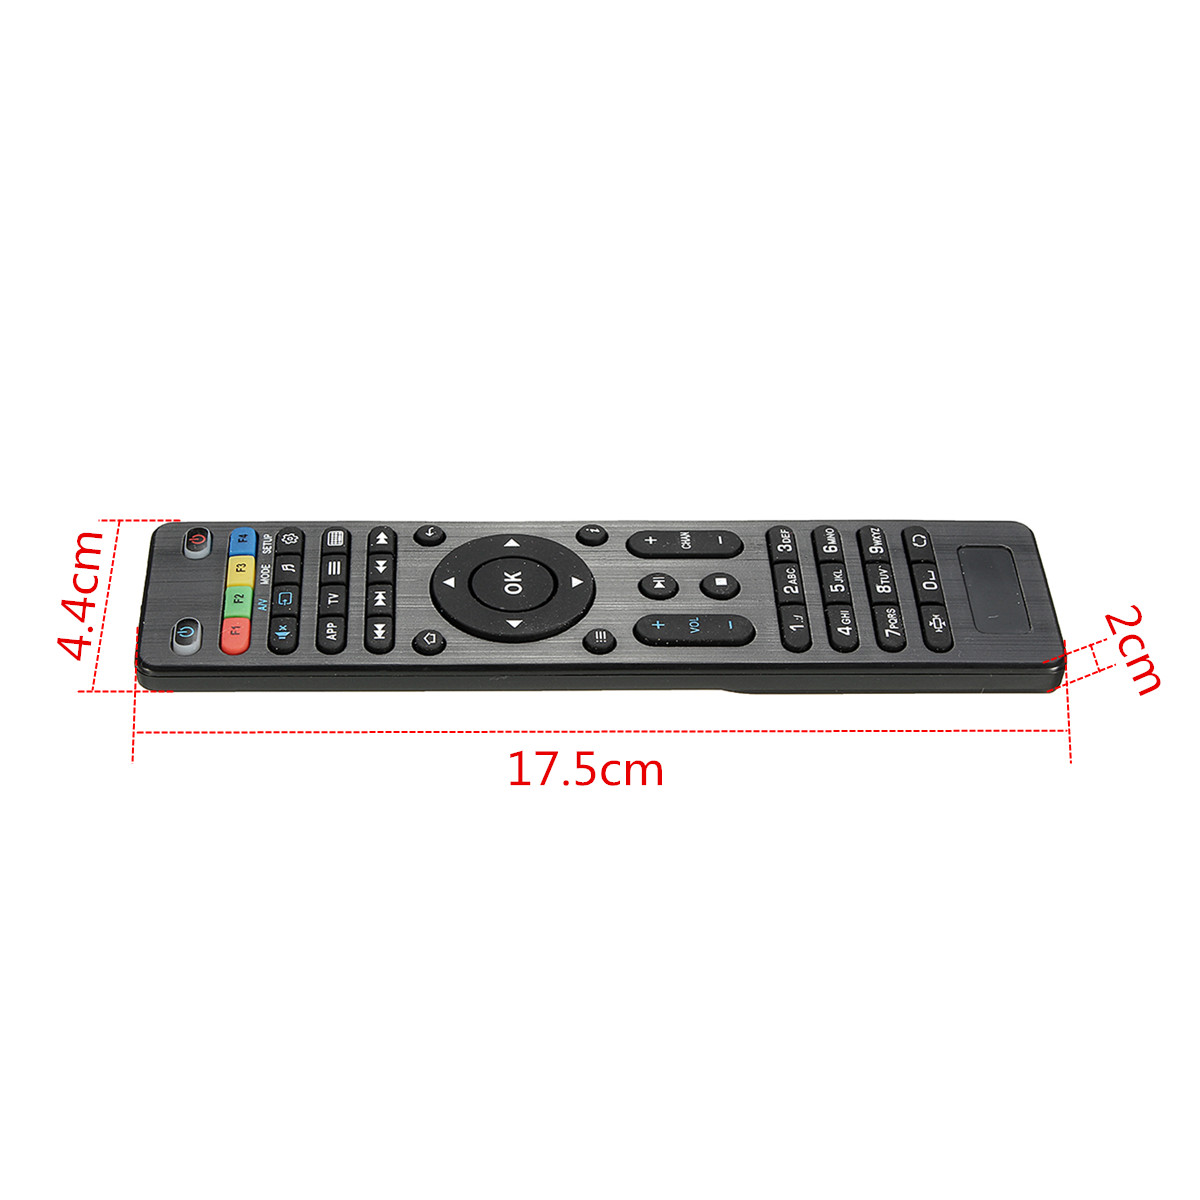 US $2 62 19% OFF|Remote Control Replacement For Mag 250 254 255 260 261 270  IPTV TV Set Top Box High Quality Remote Control Controller-in Remote